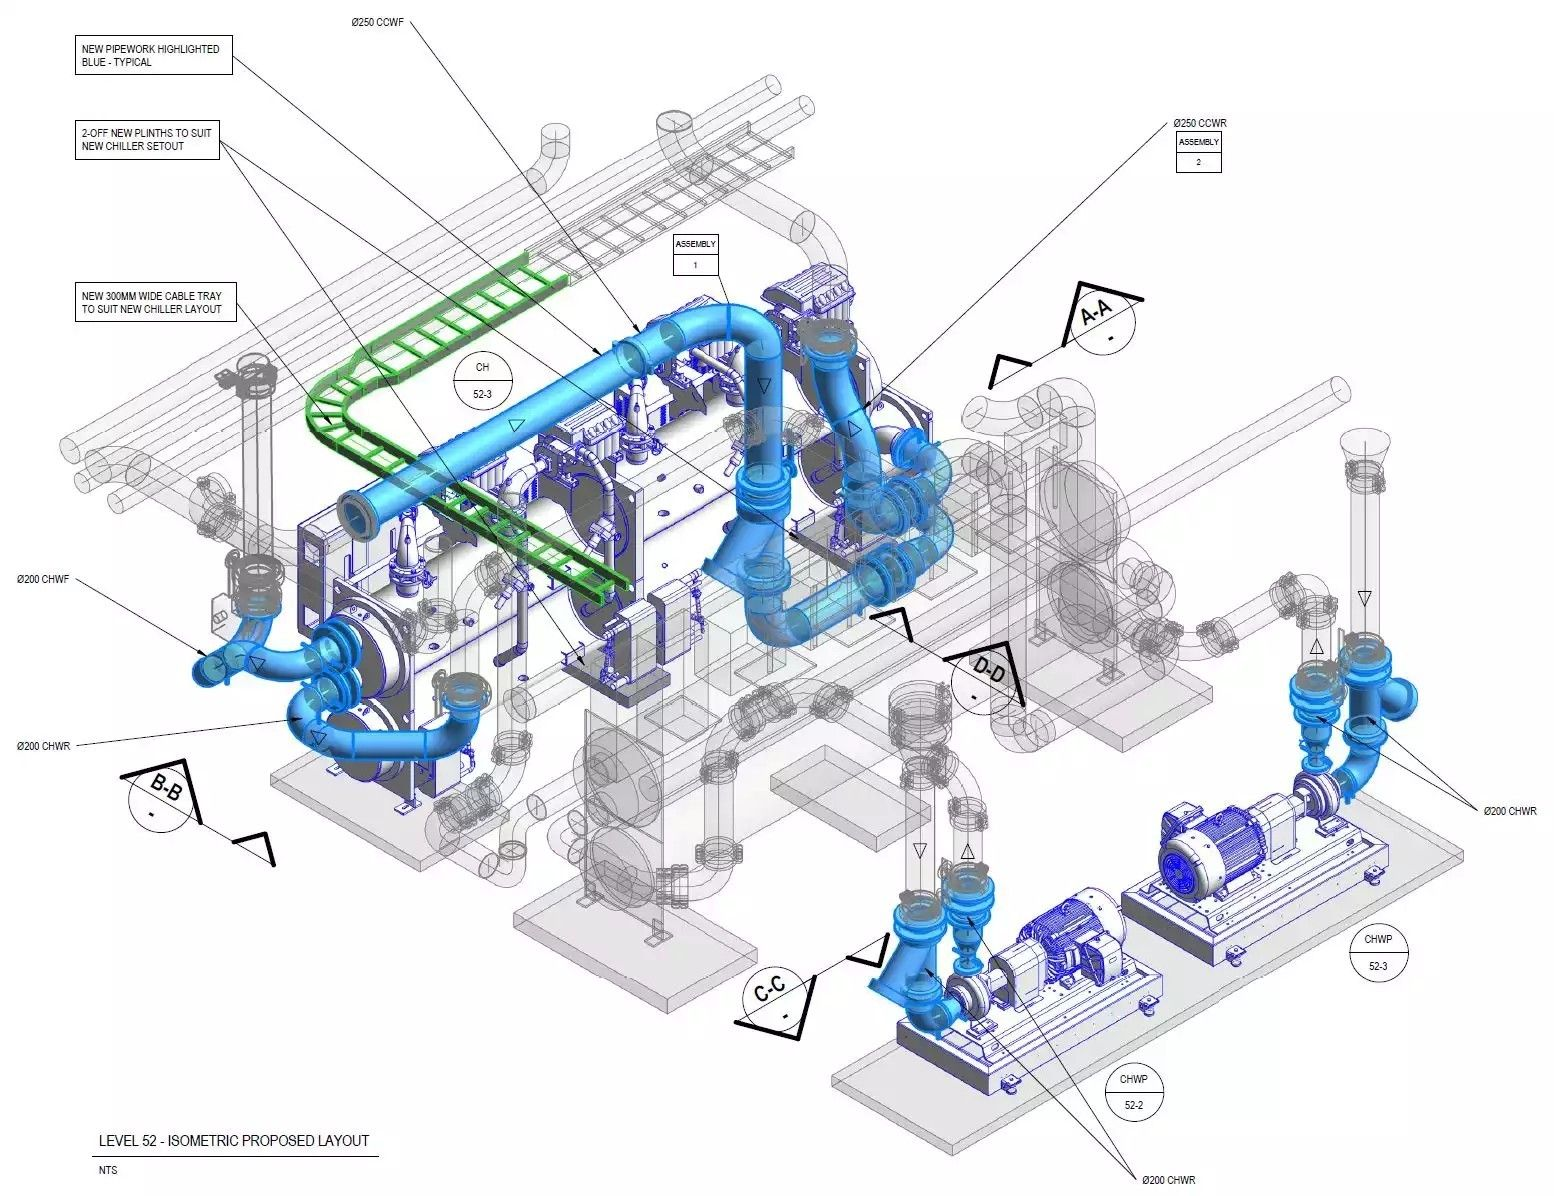 medium resolution of piping and instrumentation diagram building information modeling room with plants revit boiler